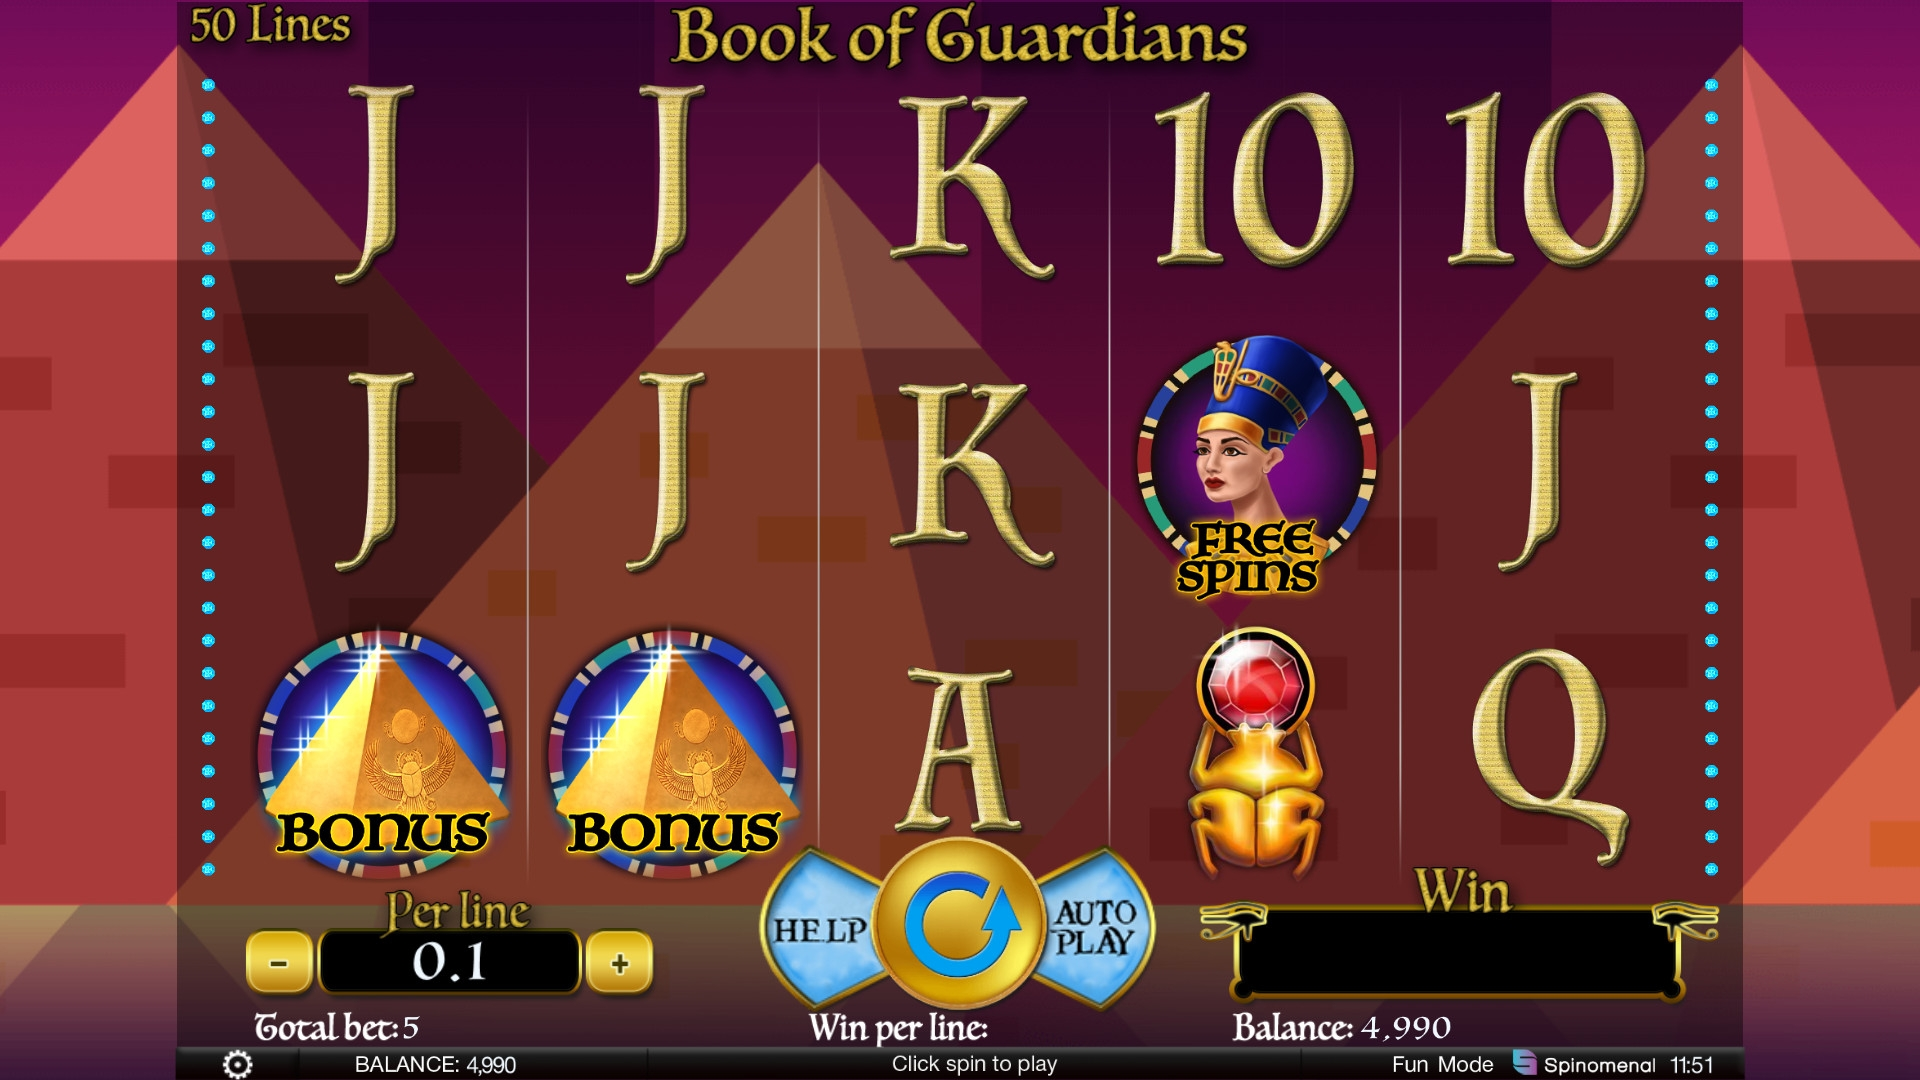 Book of Guardians (Book of Guardians) from category Slots